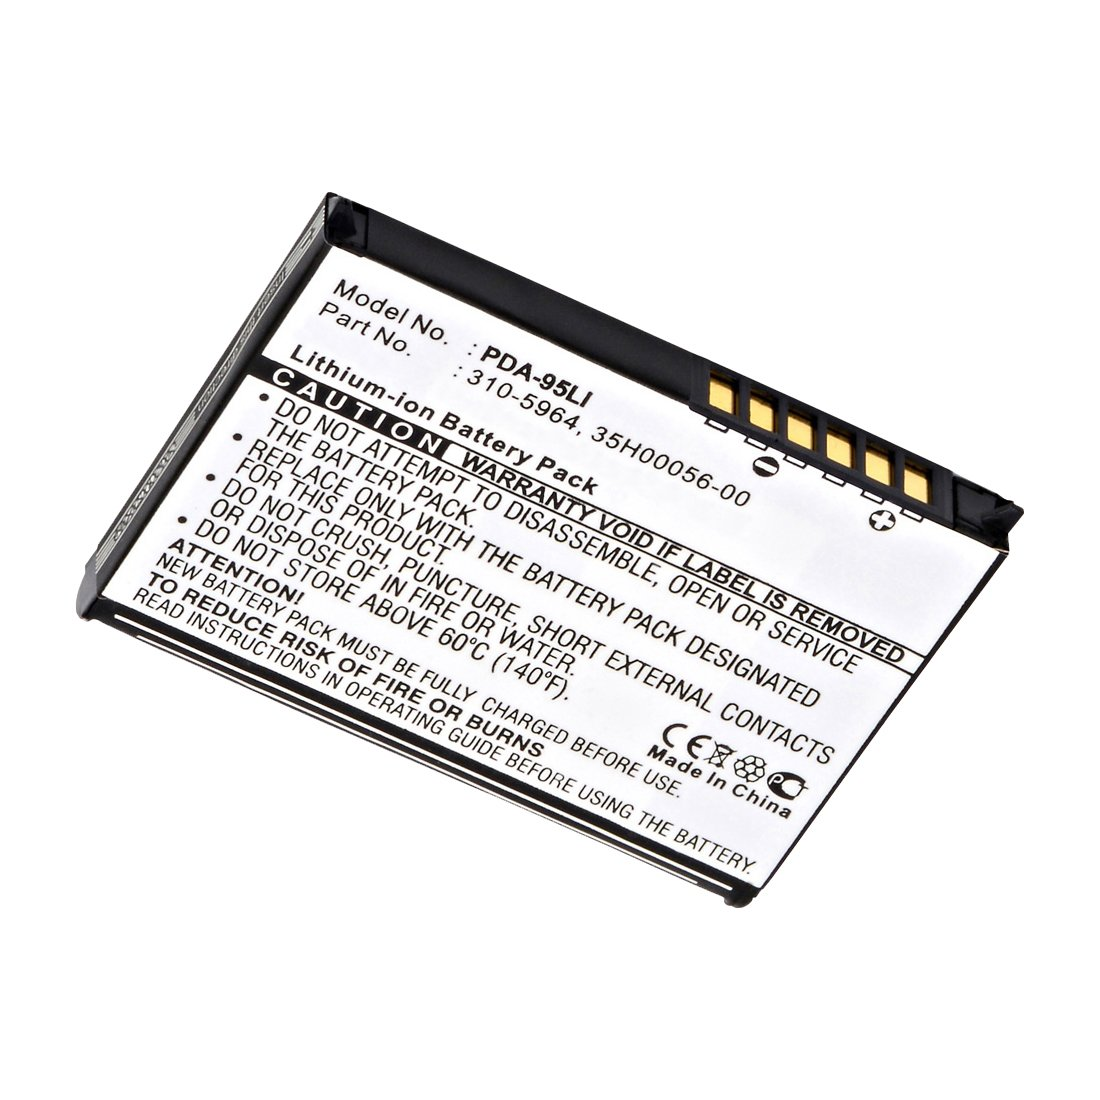 Replacement Dell Axim X50, X51 Battery: BatteryMart.com